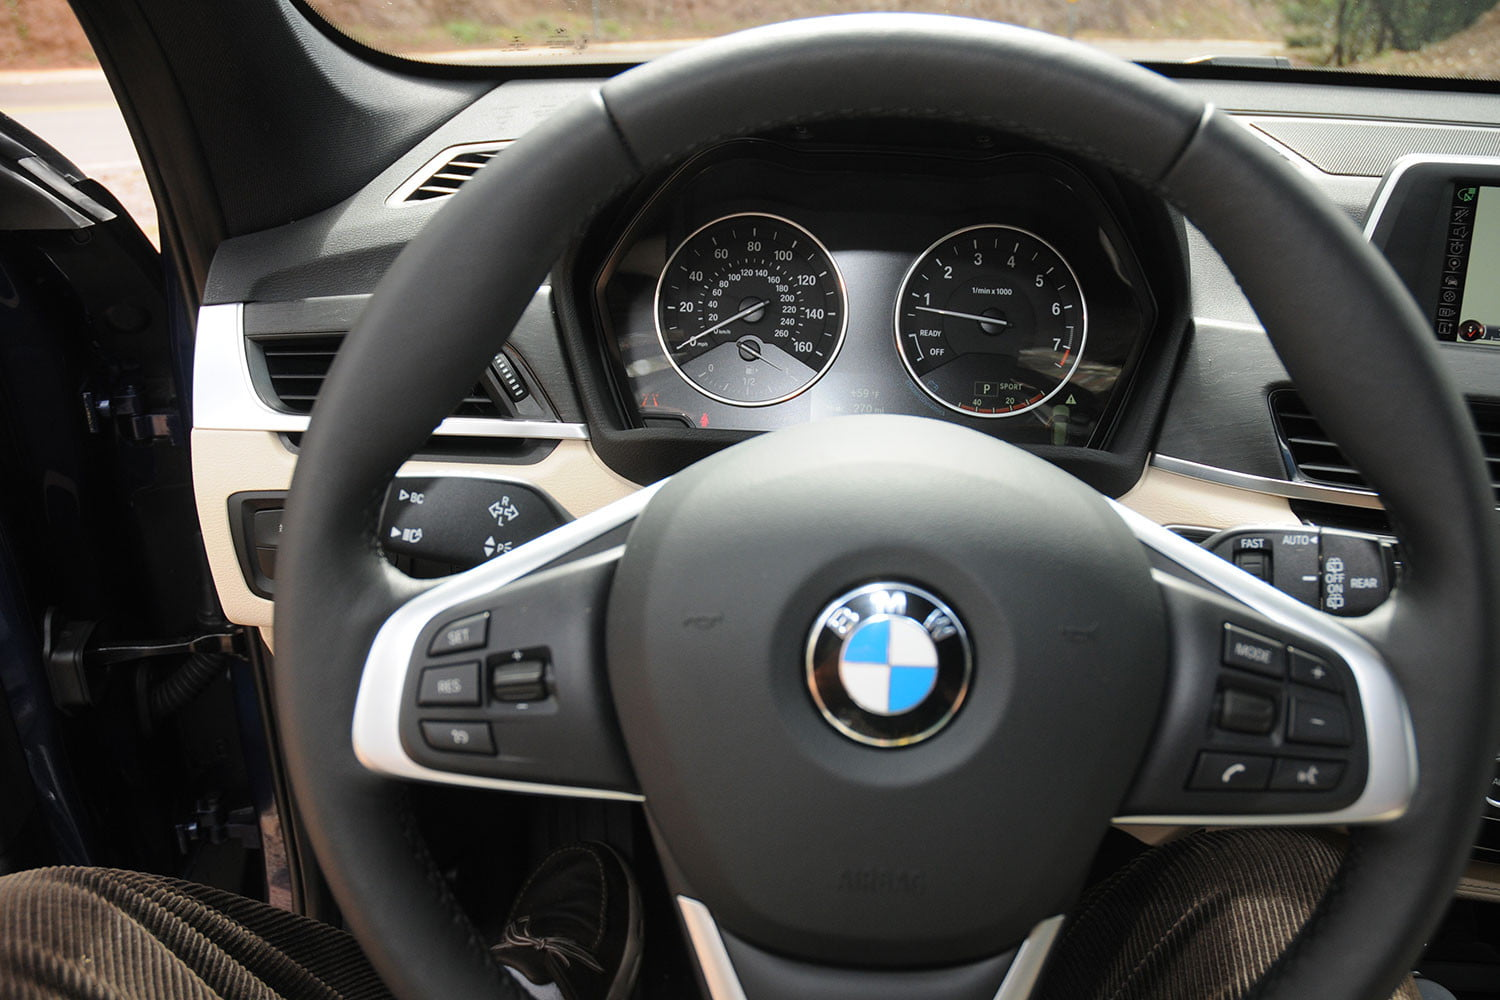 2016 bmw x1 first drive review new turbo engine updated body rh digitaltrends com bmw x1 user manual 2016 bmw x1 user manual 2016